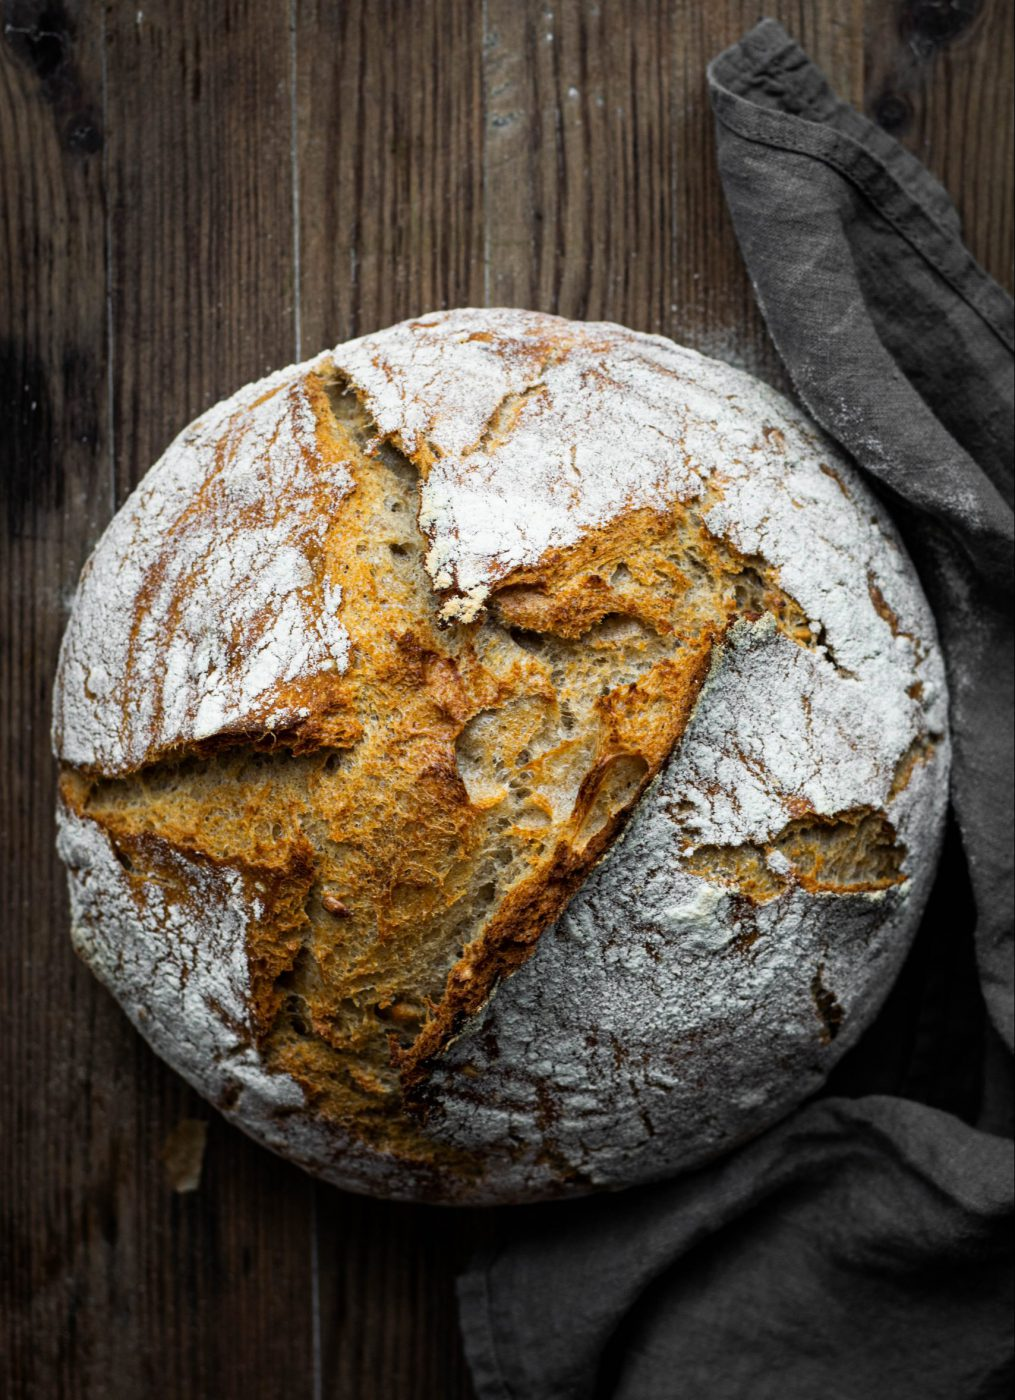 Memories of Bread and Simplicity